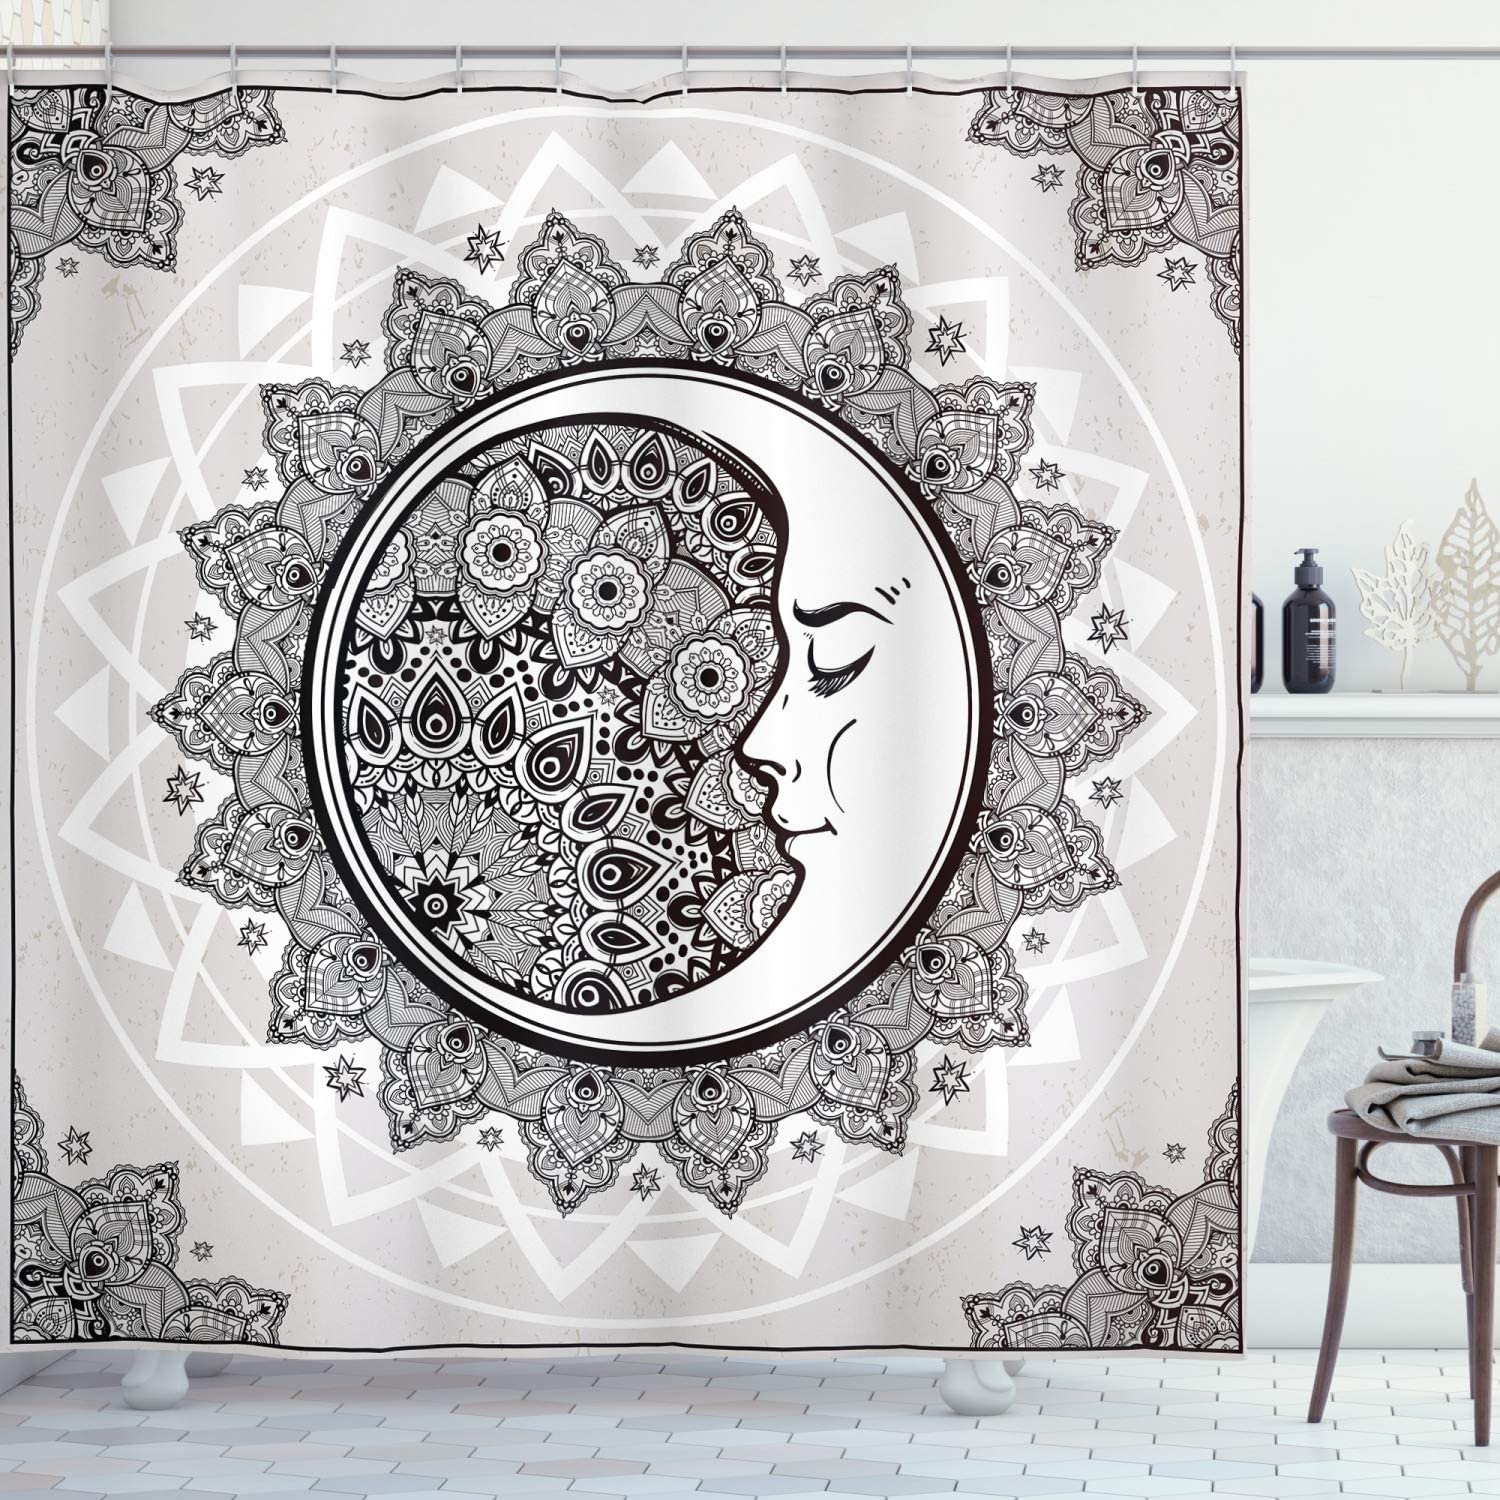 Ambesonne Mystic Shower Curtain, Ornate Crescent Moon with Stars and Mandala Eastern Graphic, Cloth Fabric Bathroom Decor Set with Hooks, 84